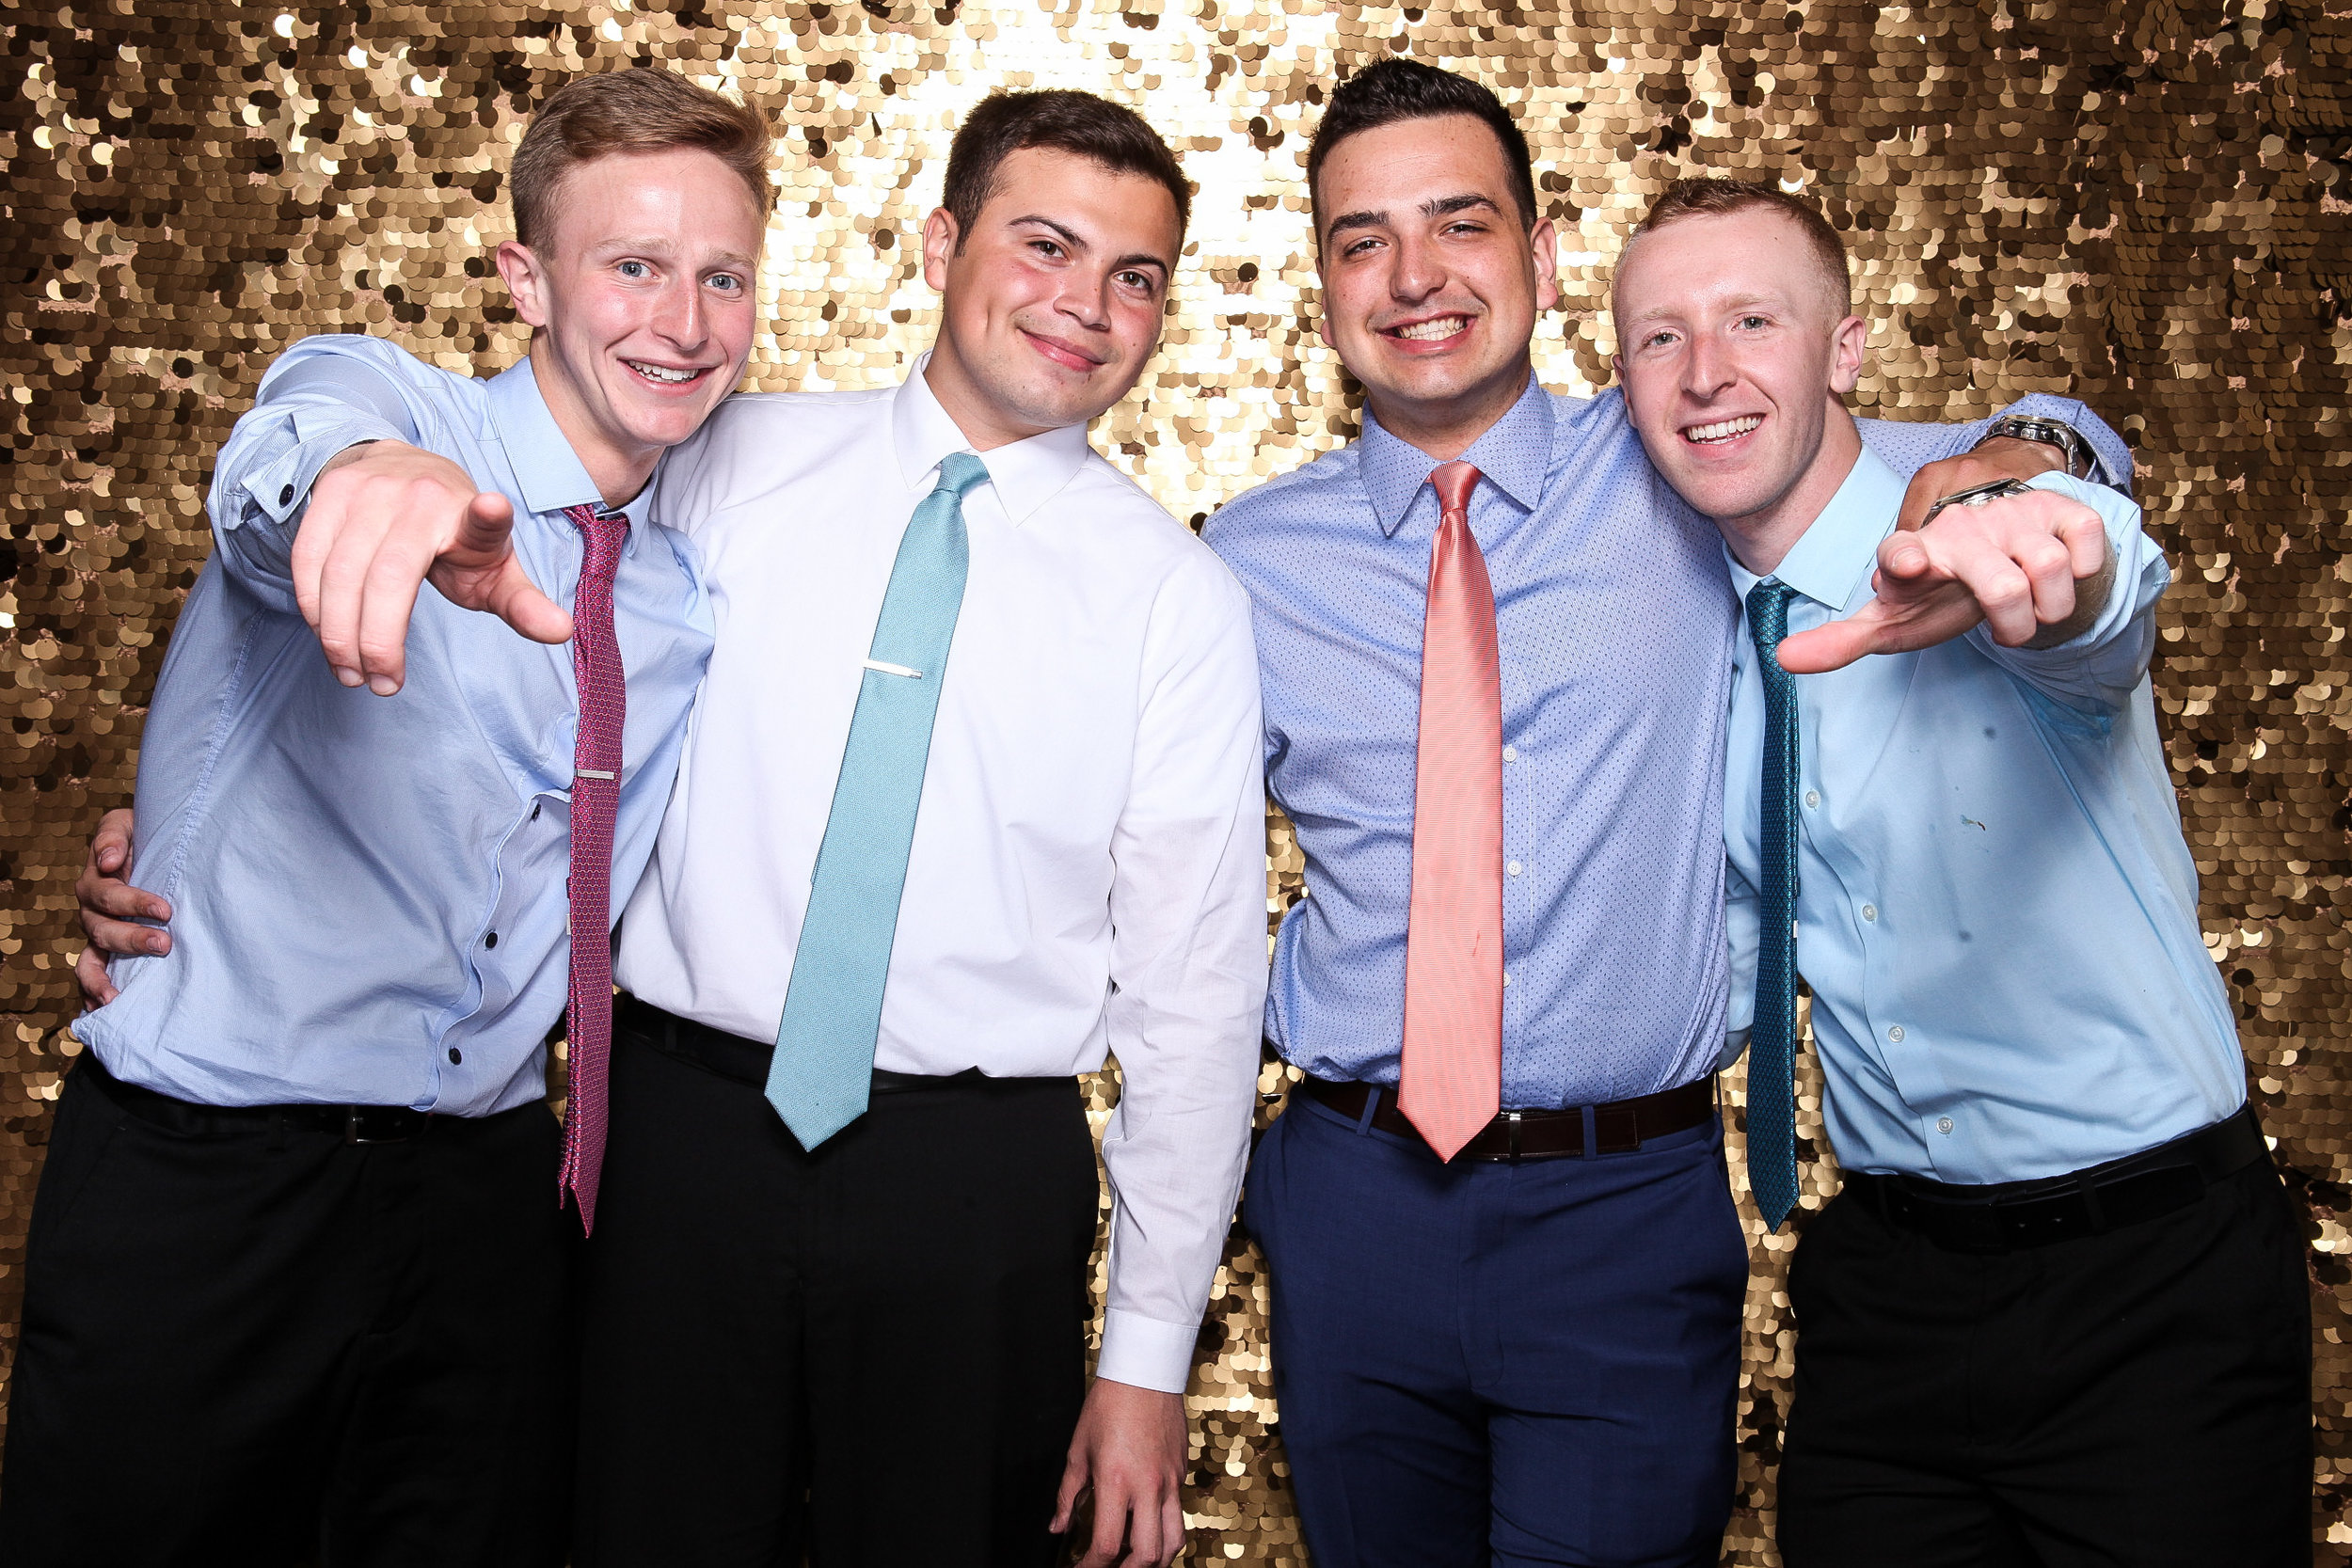 20190503_Adelphi_Senior_Formal-340.jpg